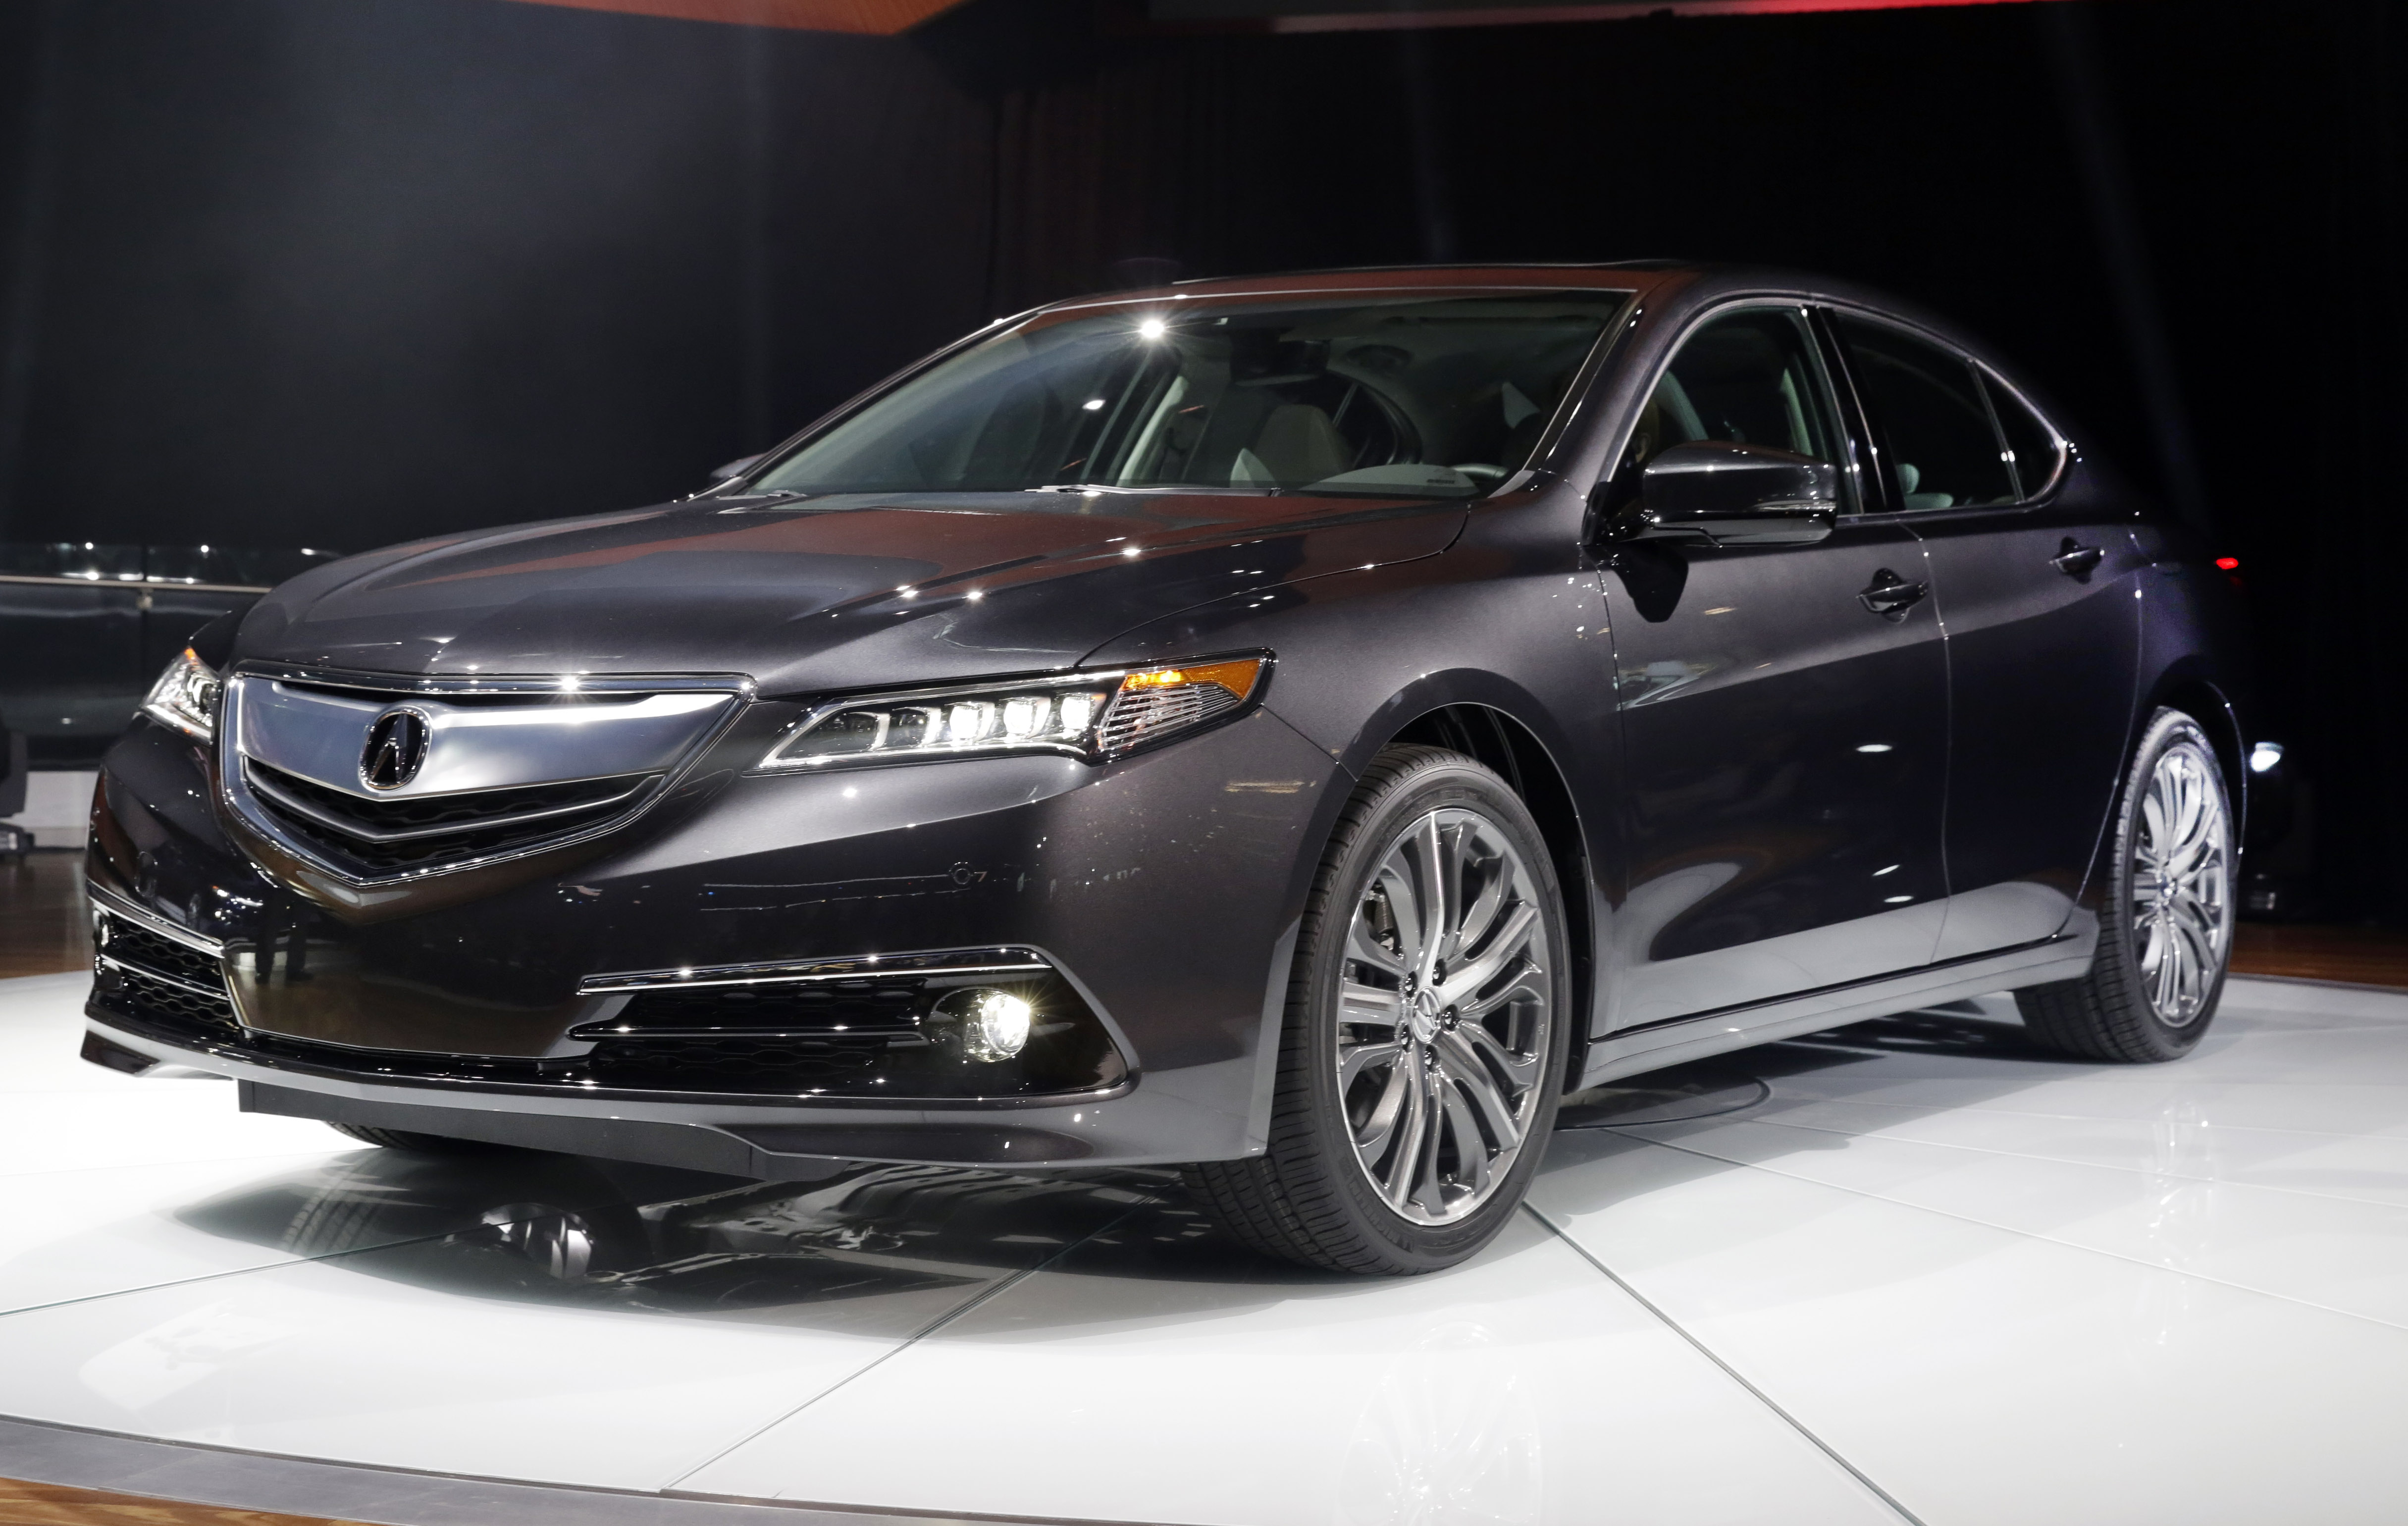 package pre in ct advance car schaller models for w tlx htm owned featured acura sale vehicles manchester